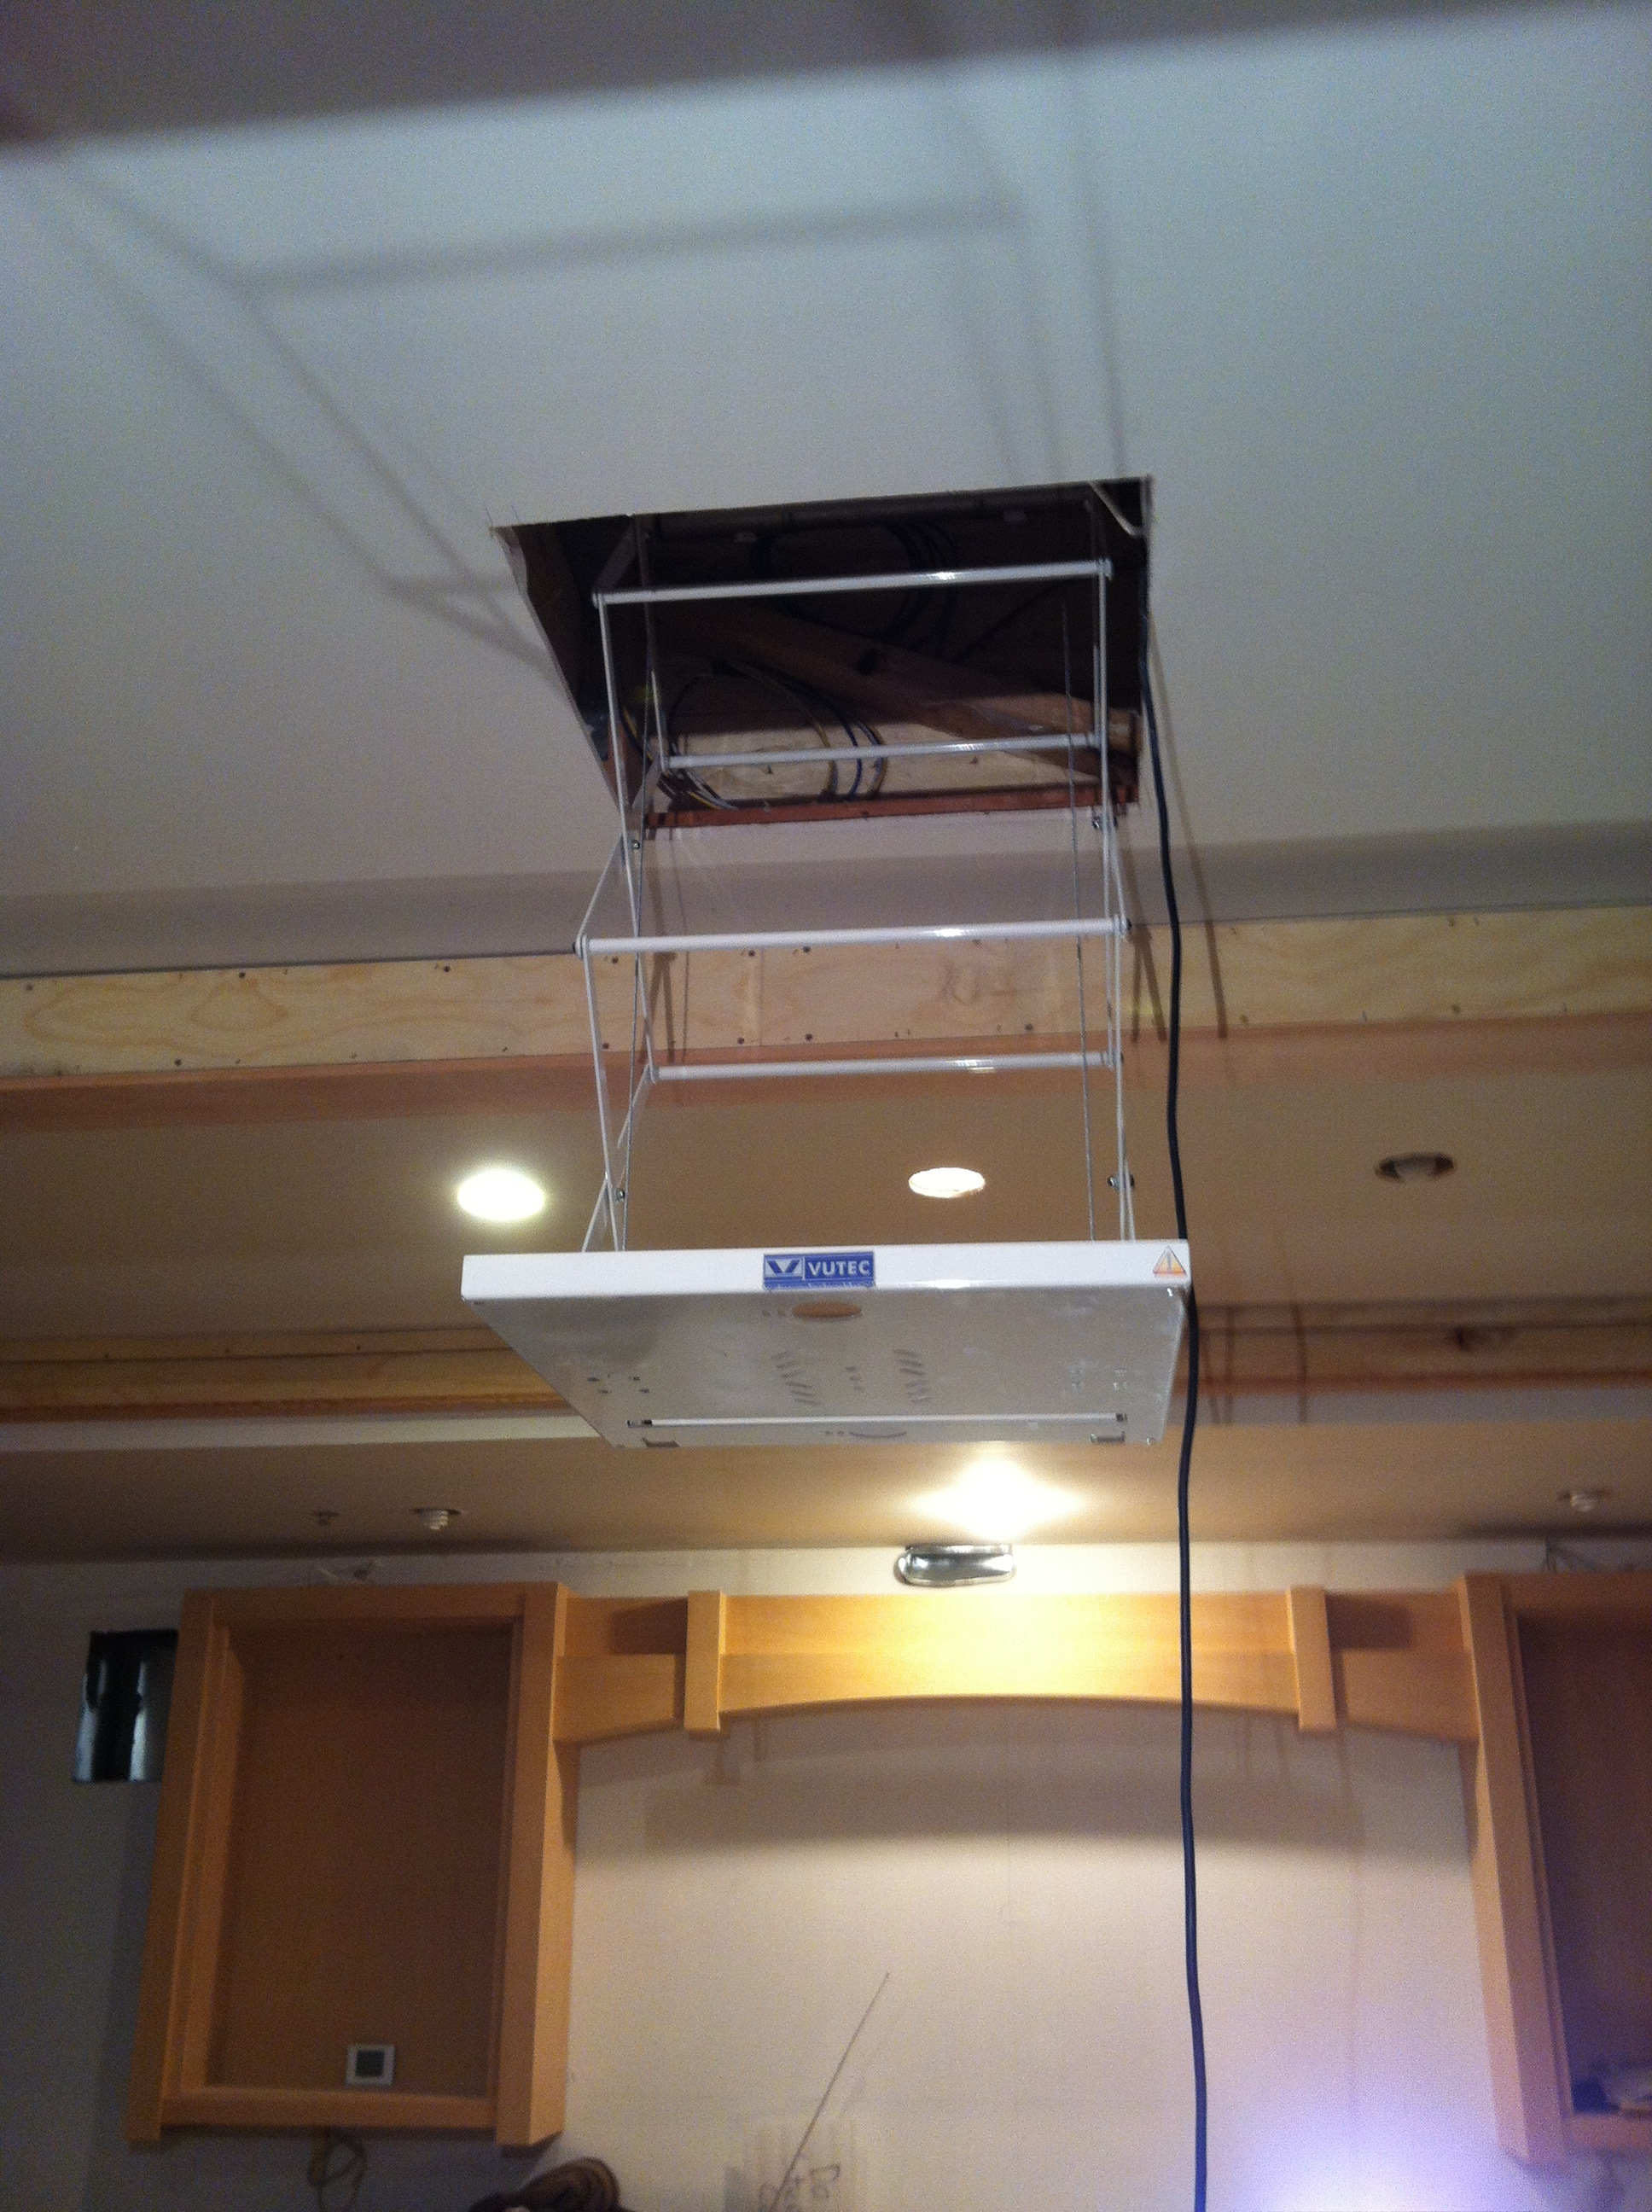 VuTec motorized lift takes protector all the way up and out of the room.